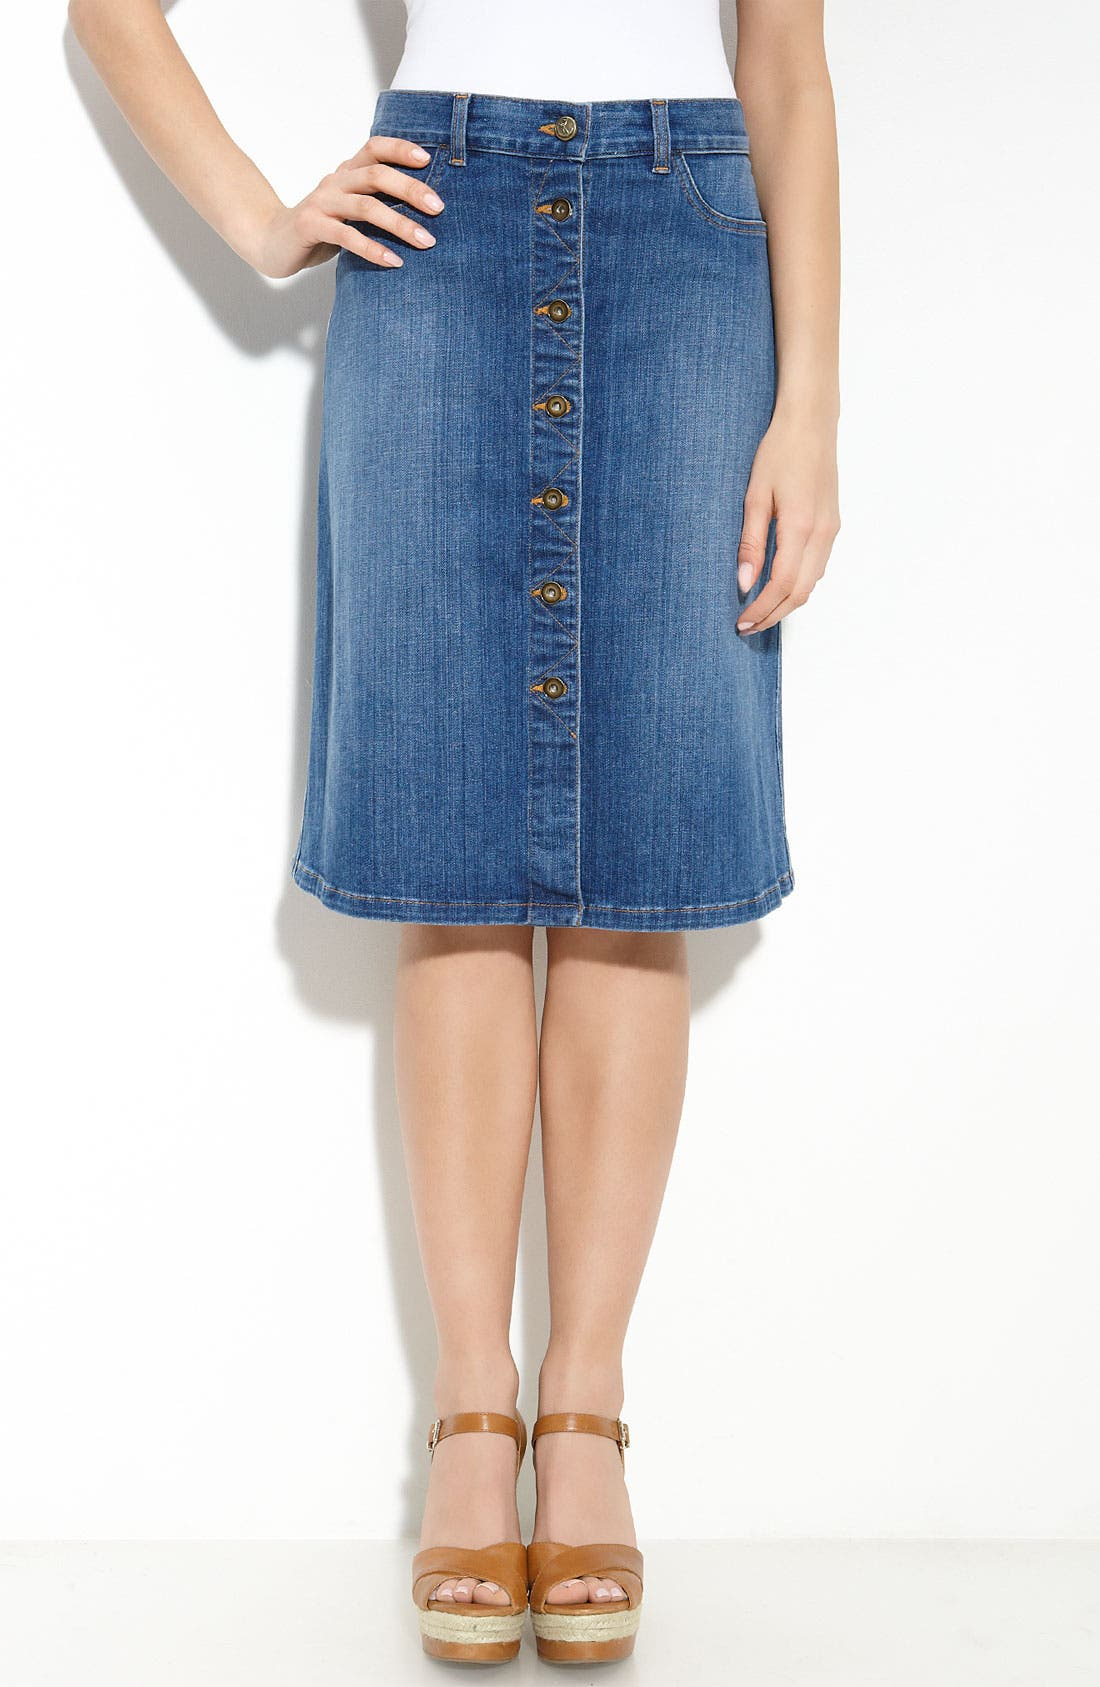 Alternate Image 1 Selected - CJ by Cookie Johnson 'Unity' Skirt (New Vintage Blue Wash)